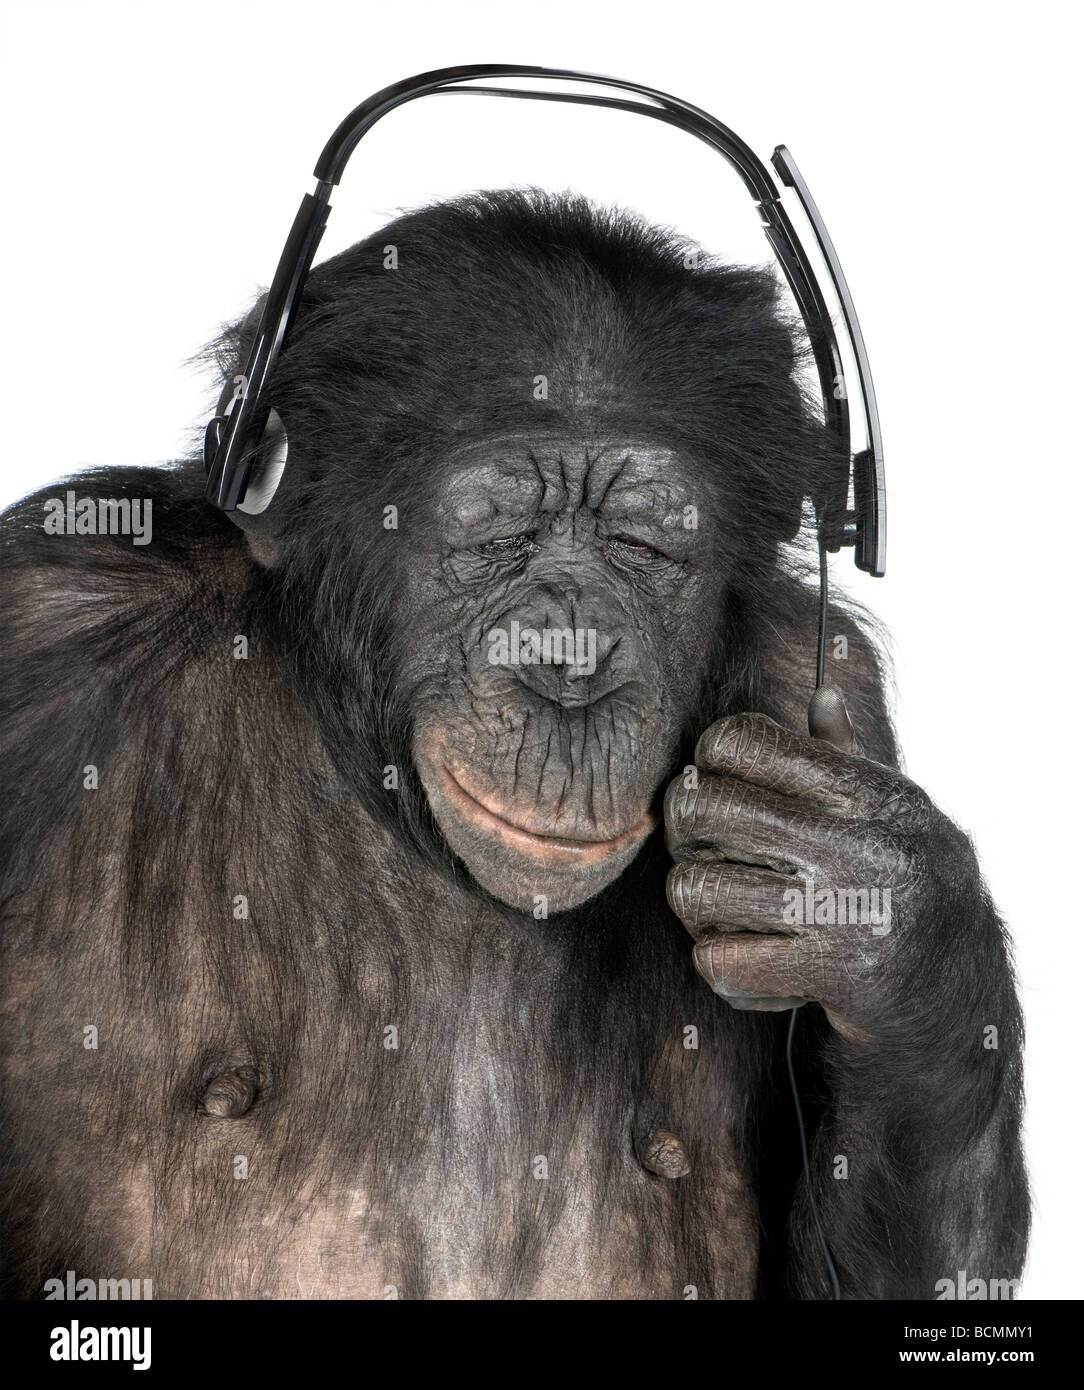 Monkey, Mixed Breed between Chimpanzee and Bonobo, 20 years old, listening to music on headphones in front of white - Stock Image